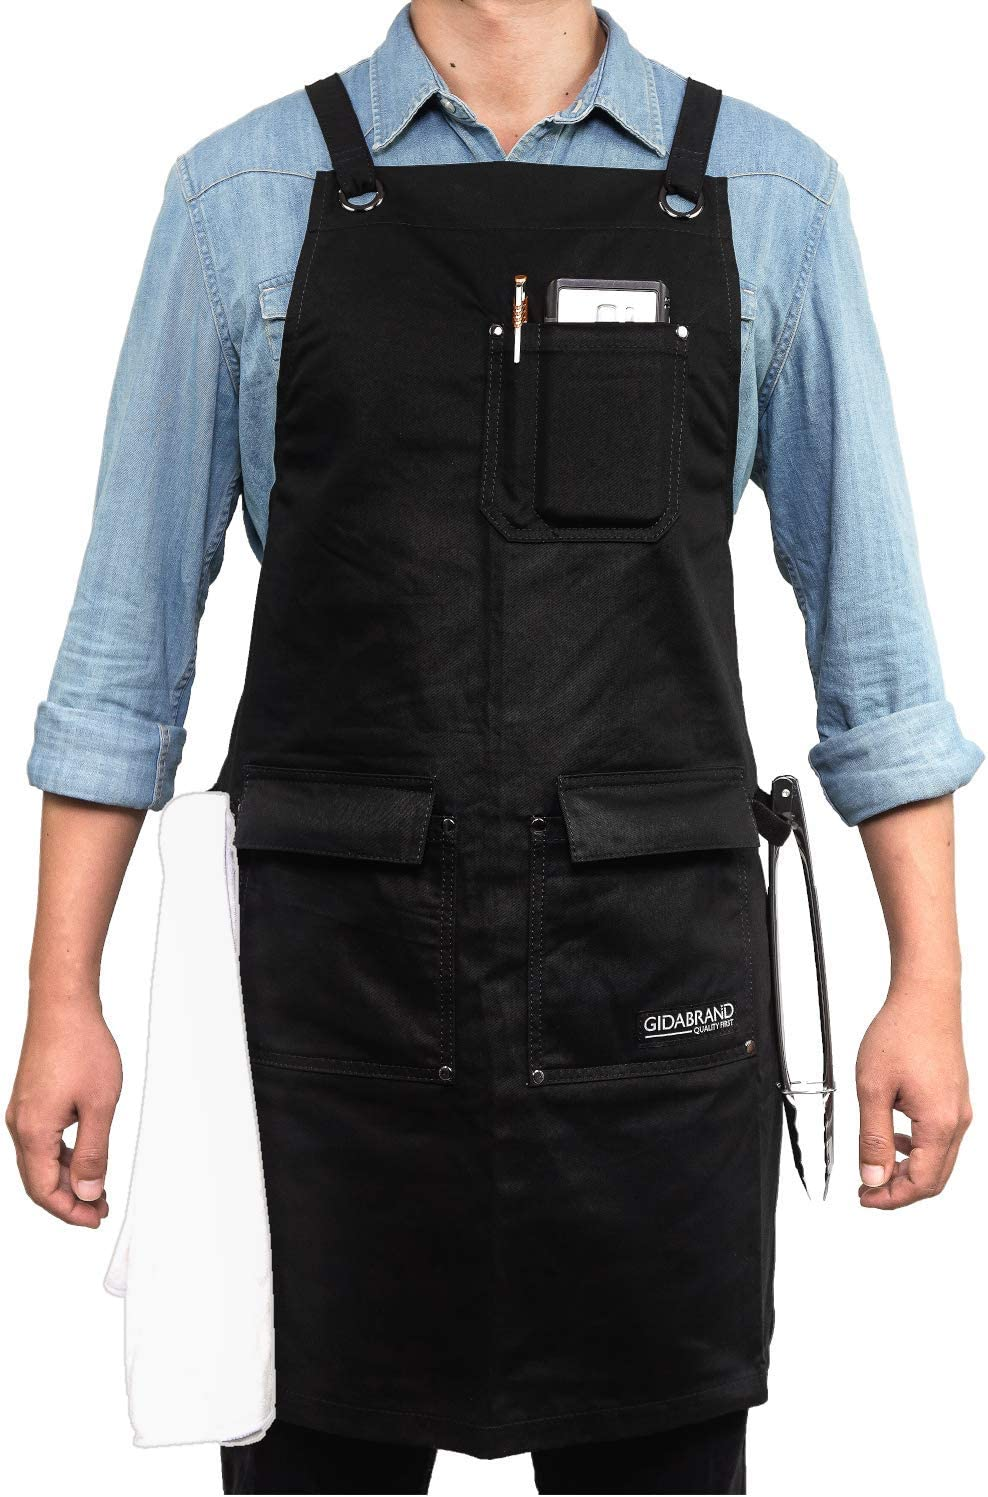 for Perfect Fit and Comfort M to XXL for Kitchen 10 oz Cotton Professional Grade Chef Apron Pockets Headphone Loop BBQ Cooking and Grill Ideal Aprons for Women and Men Fully Adjustable